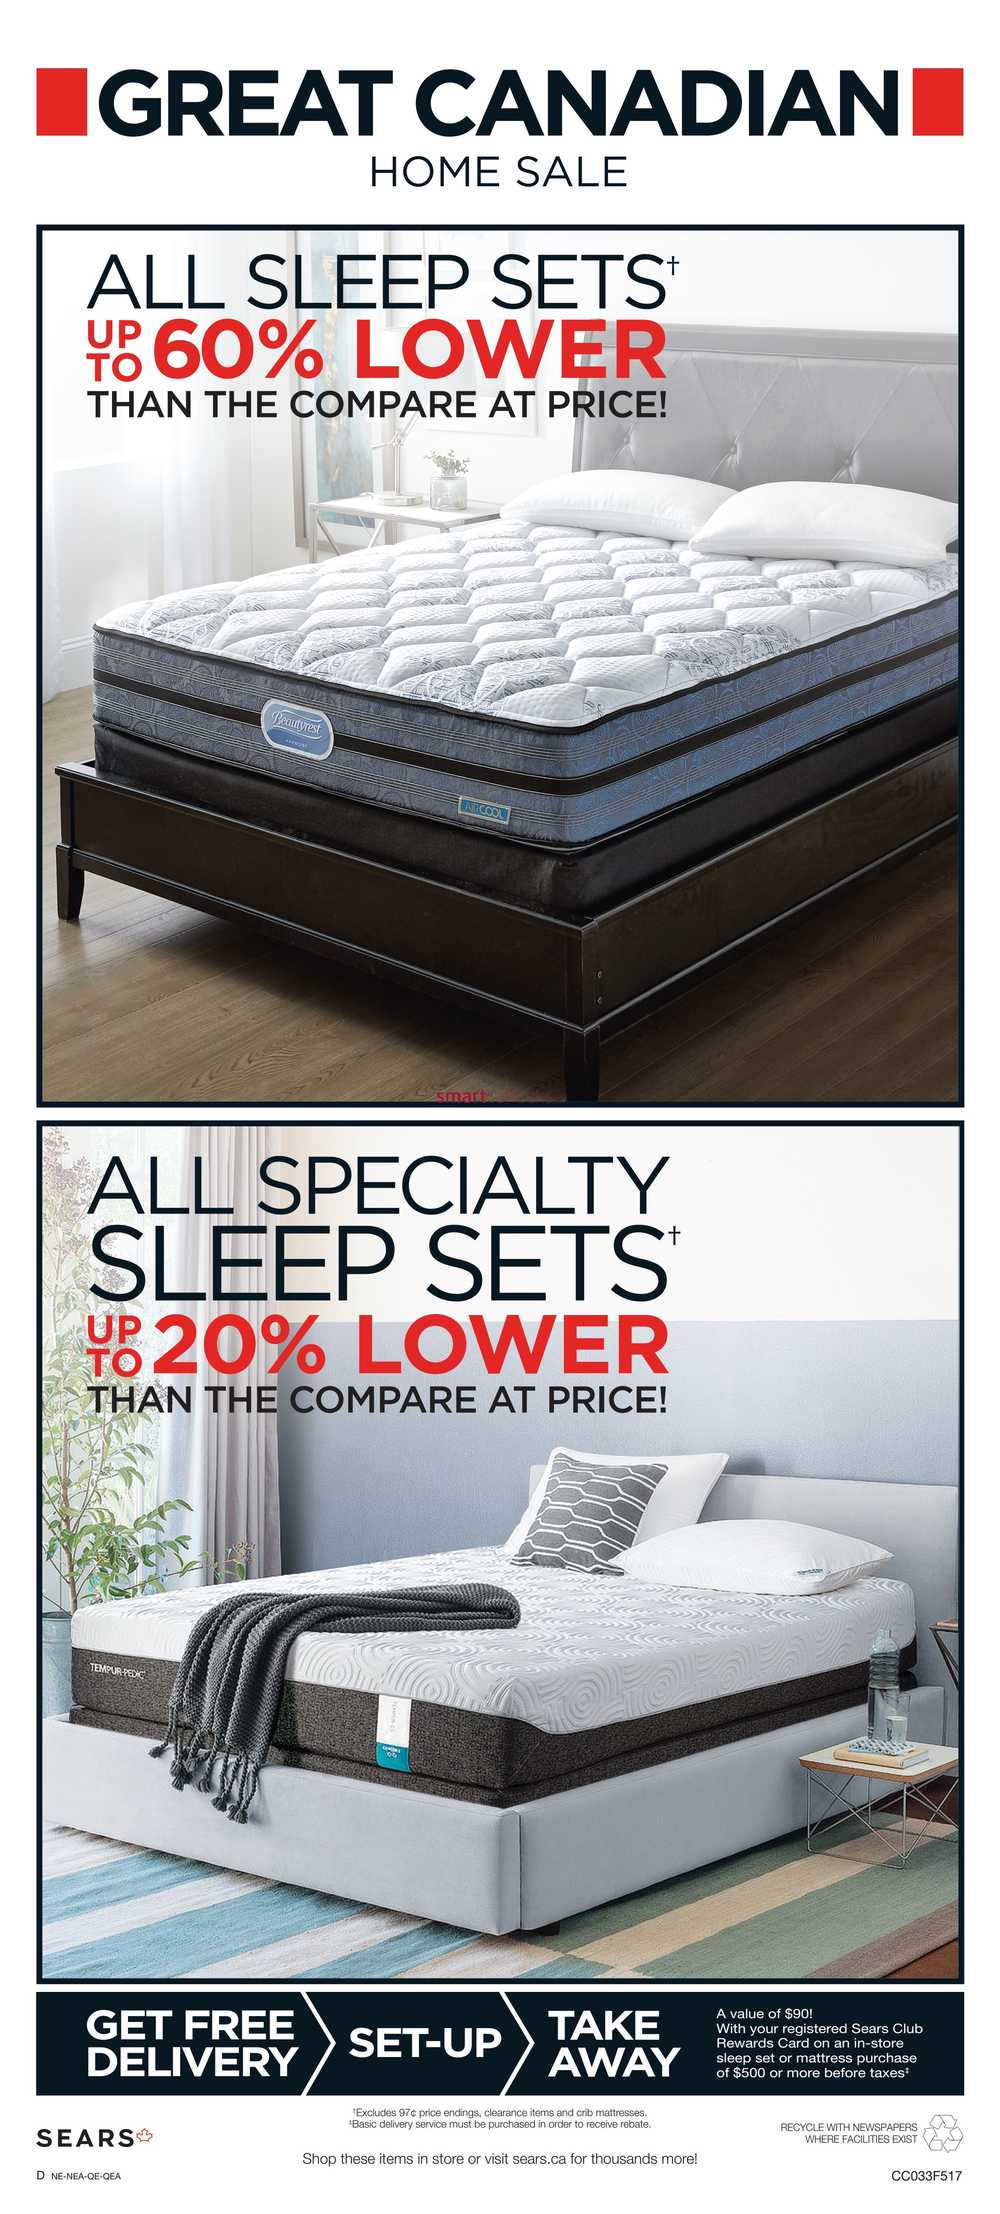 can price that where best buyer rails i size s set iron metal and stores bed king beds wallpaper trundle sale sears frame wooden hd number frames of guide headboards crate sleep twin buy white top queen outlet full me air unique basic double new mattress sell near to cheap for reviews